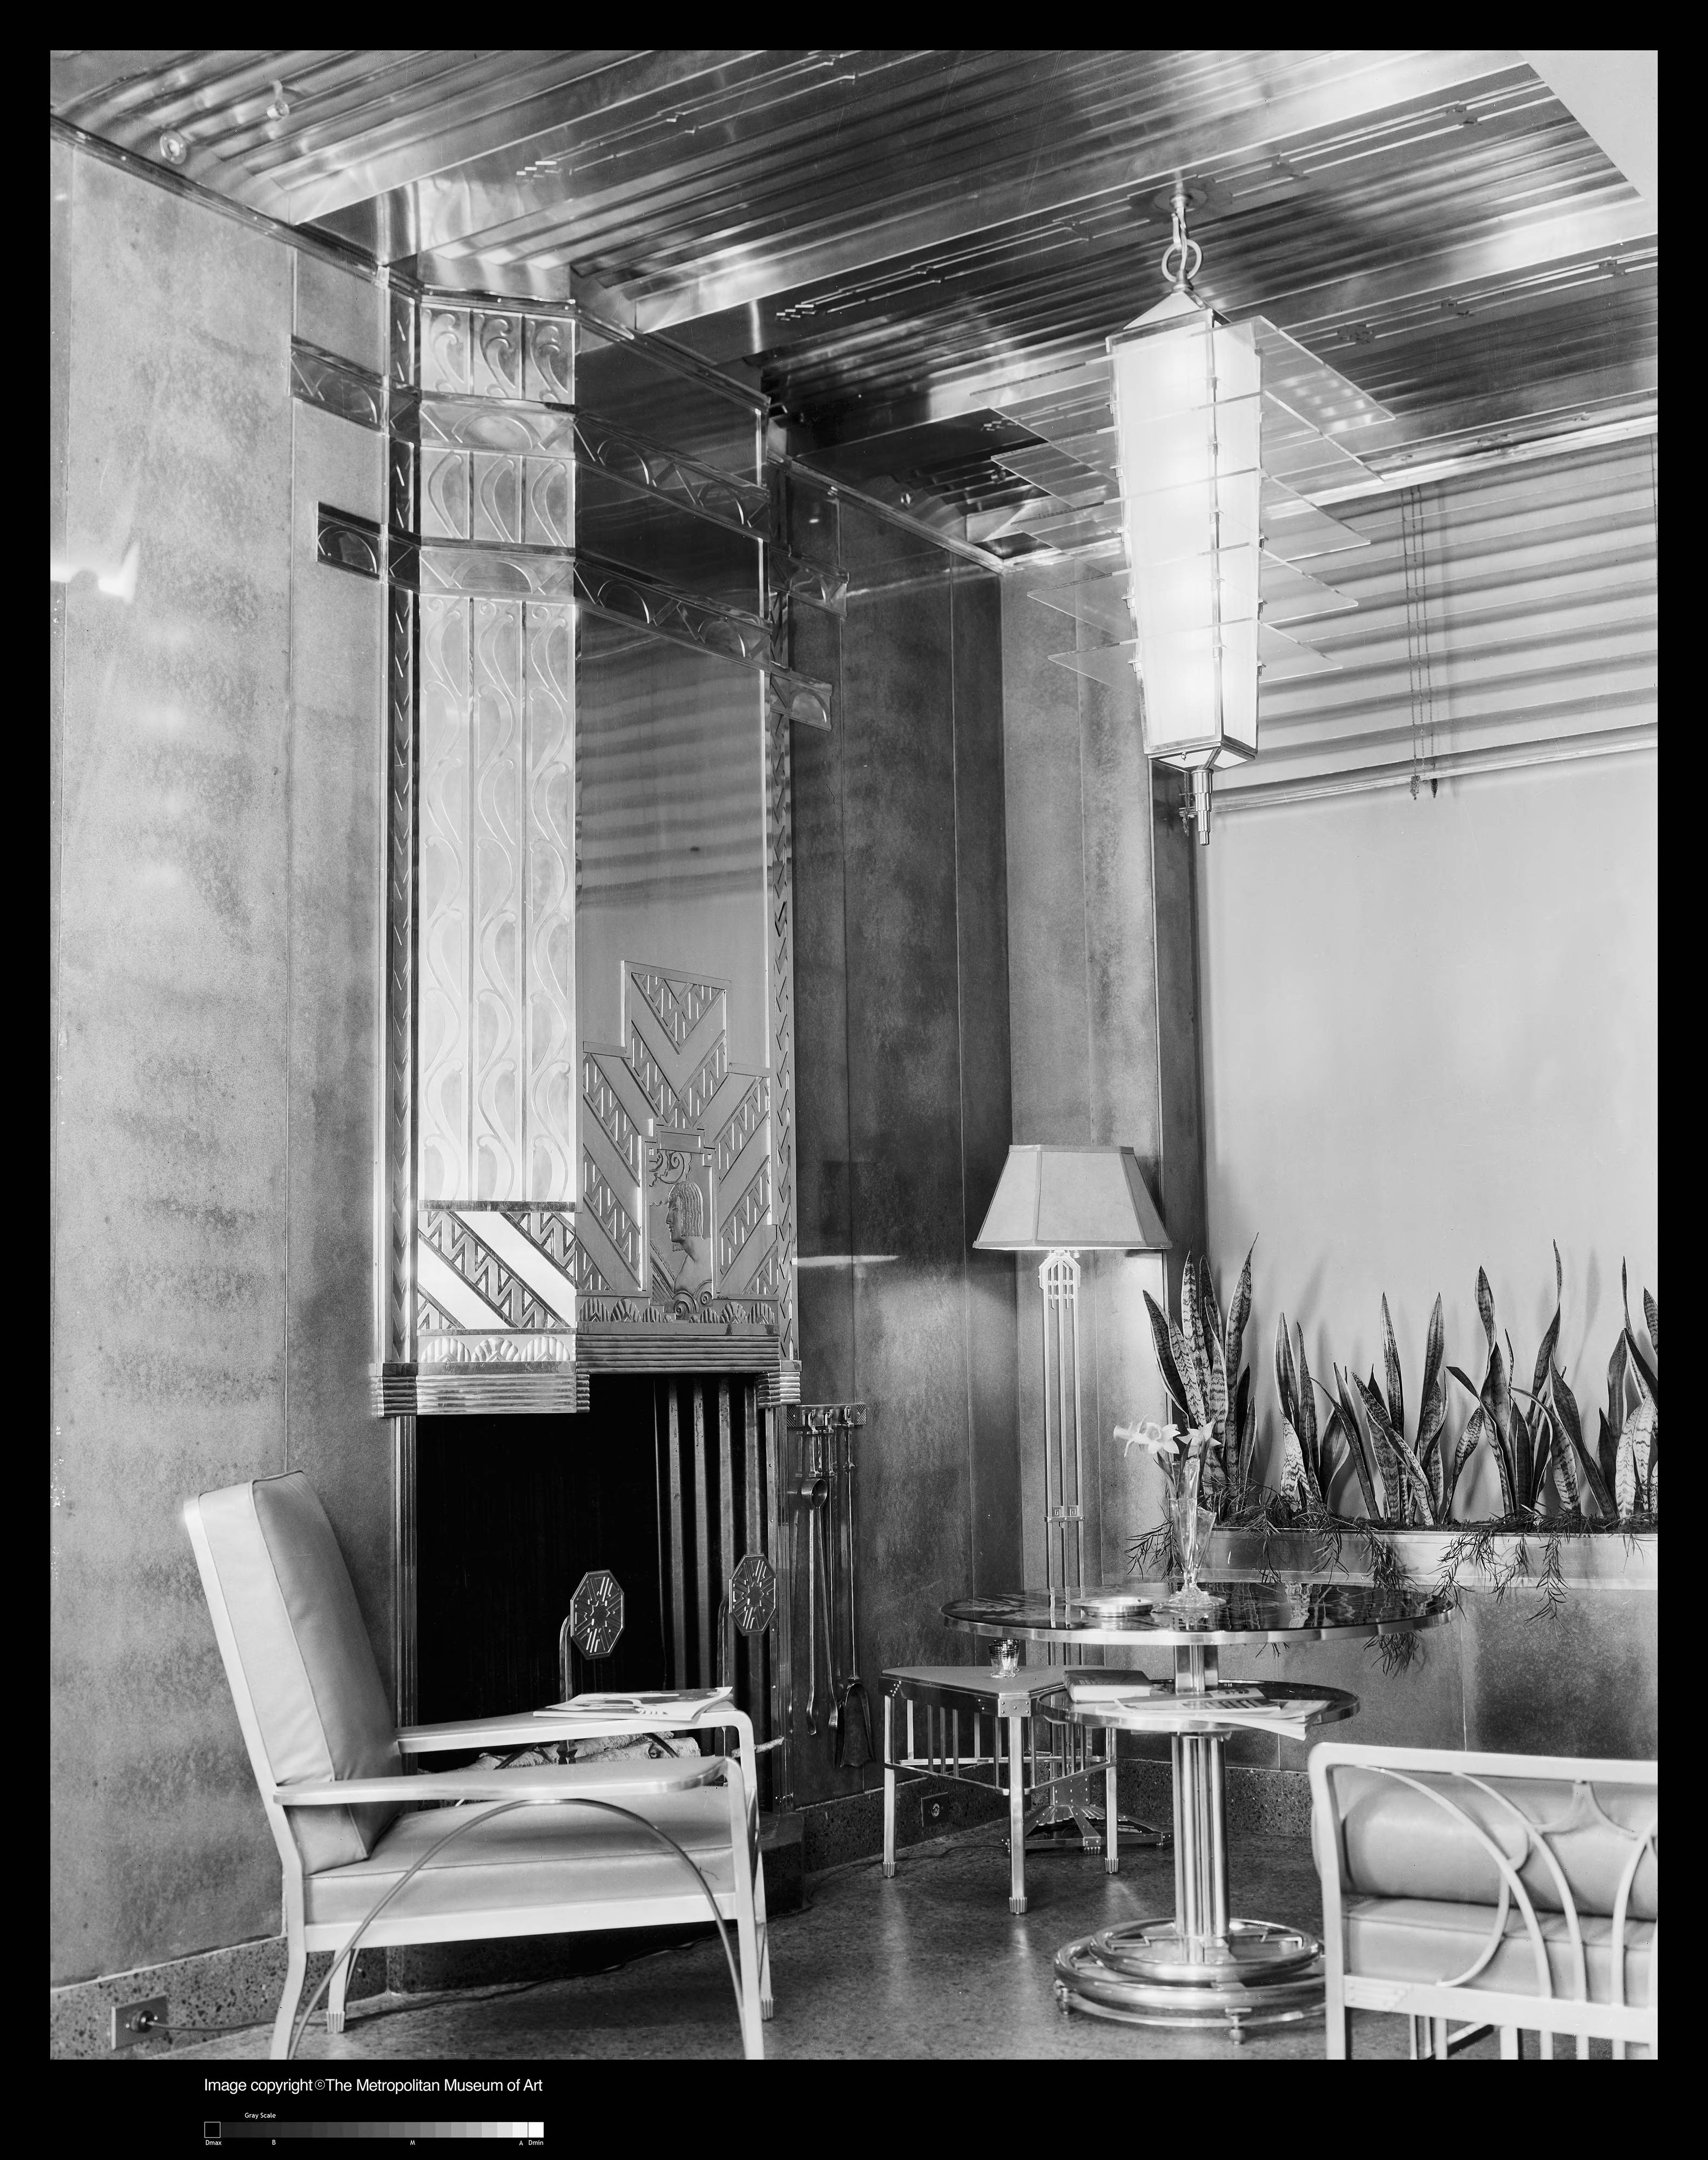 Apartment House Loggia by Raymond Hood from The Architect and the Industrial Arts exhibition (1929). Image source: Digital Collections, The Metropolitan Museum of Art.